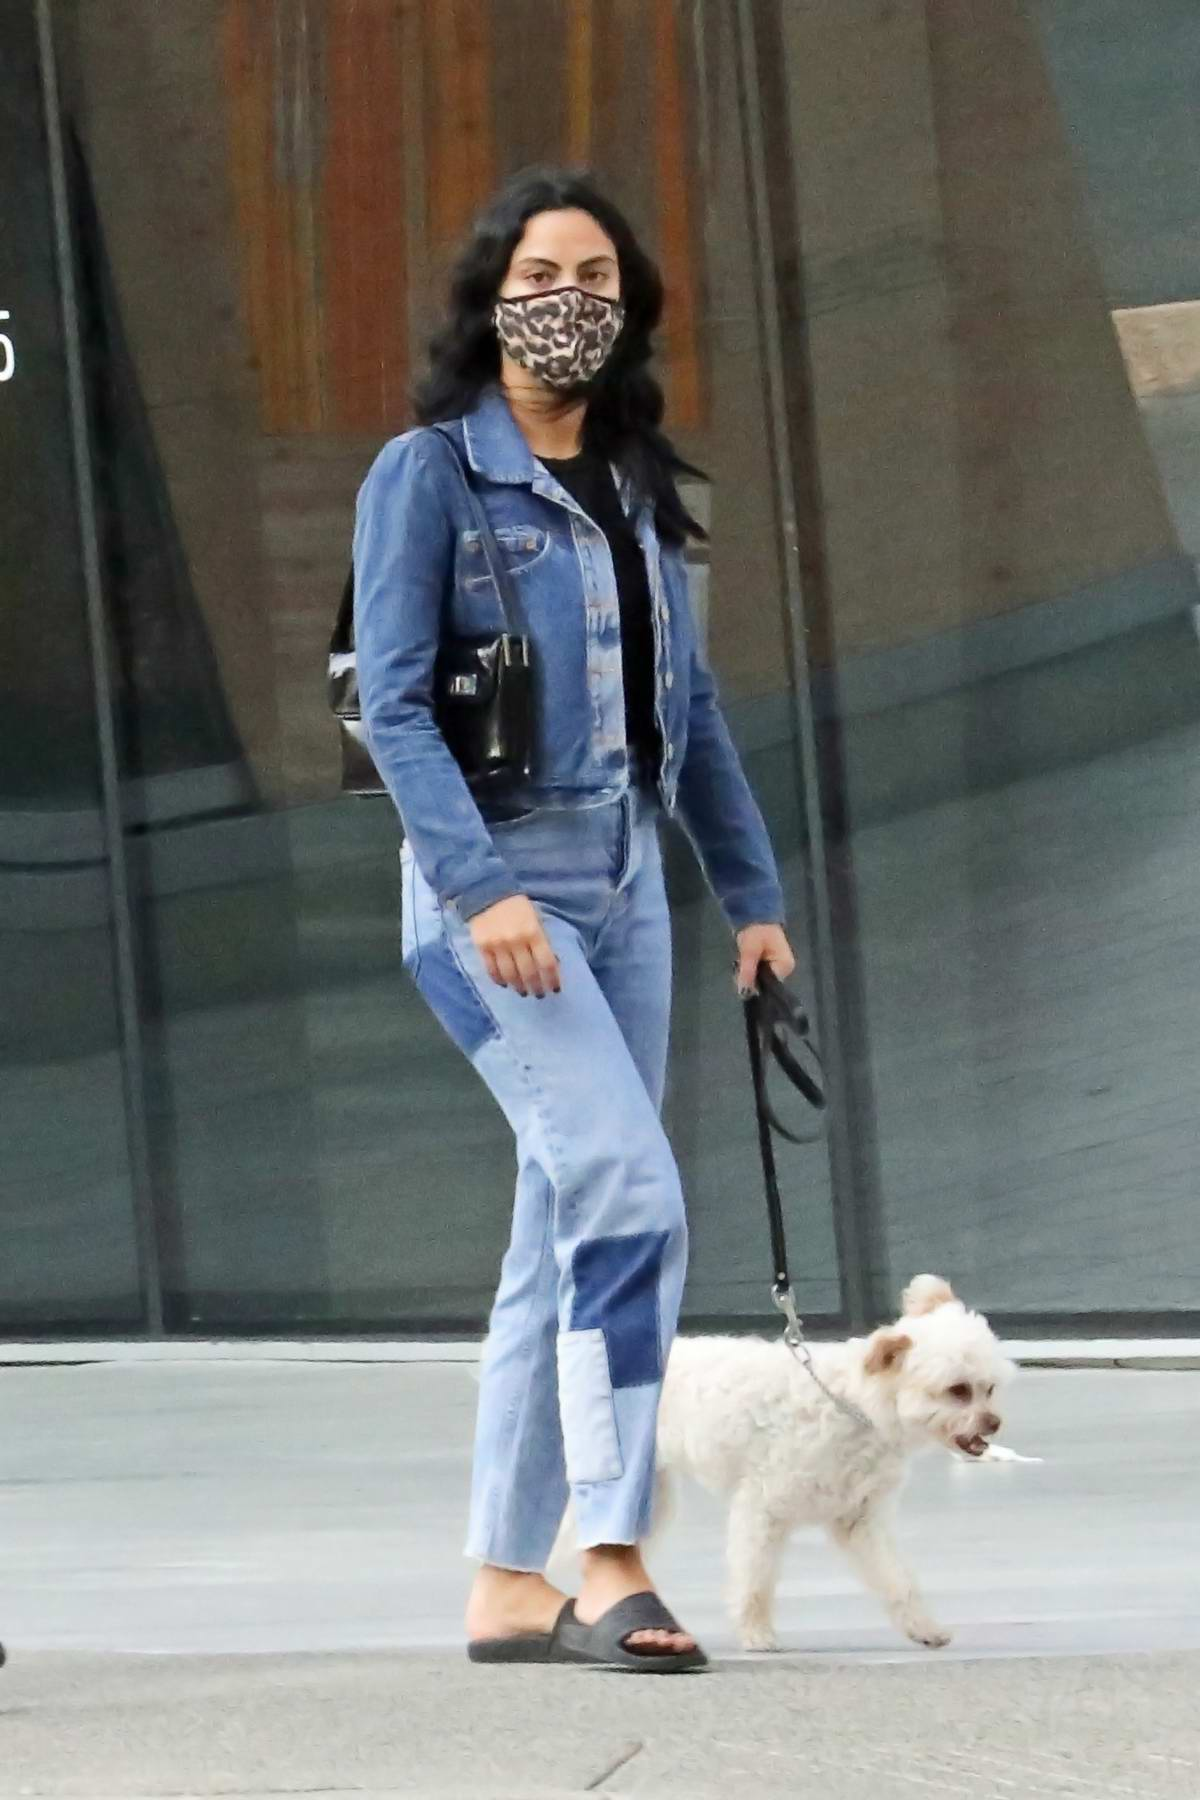 Camila Mendes takes her dog out for a walk with Miles Chamley-Watson in Vancouver, Canada